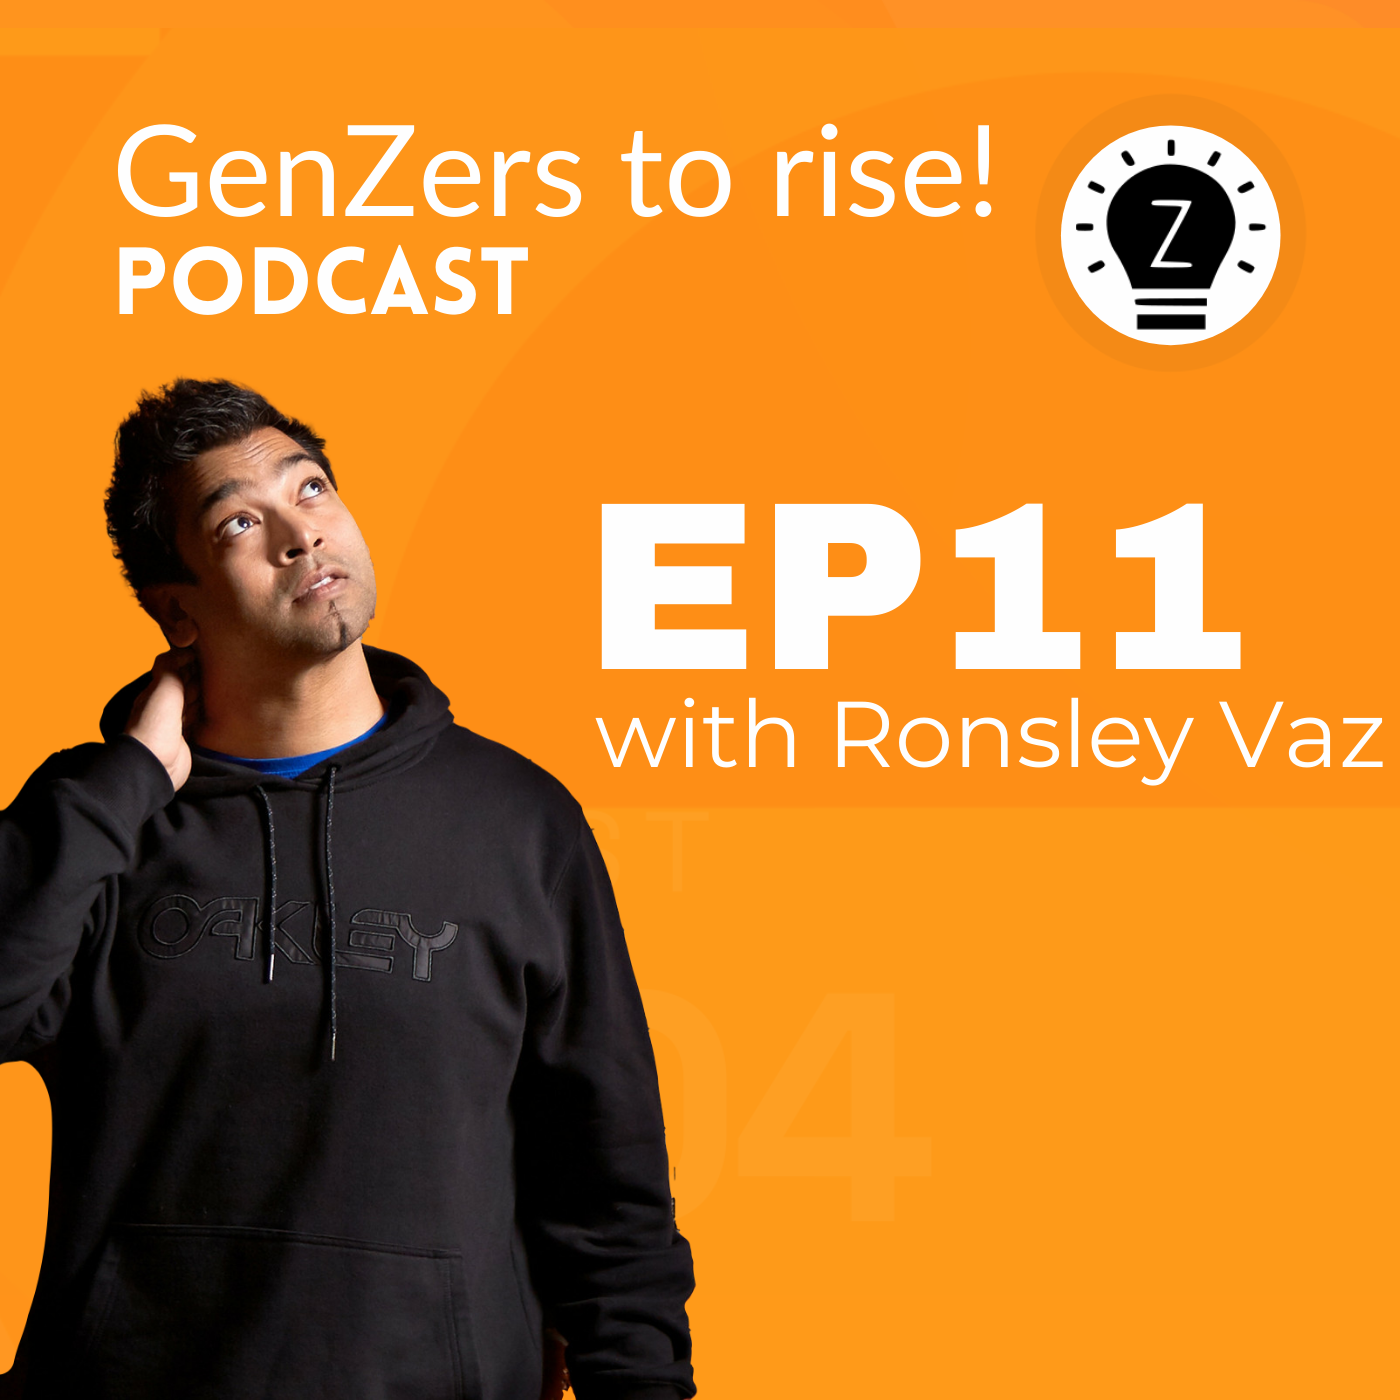 Ep 10 of genzers to rise! podcast: Marketing to a new generation with Rayze Consulting